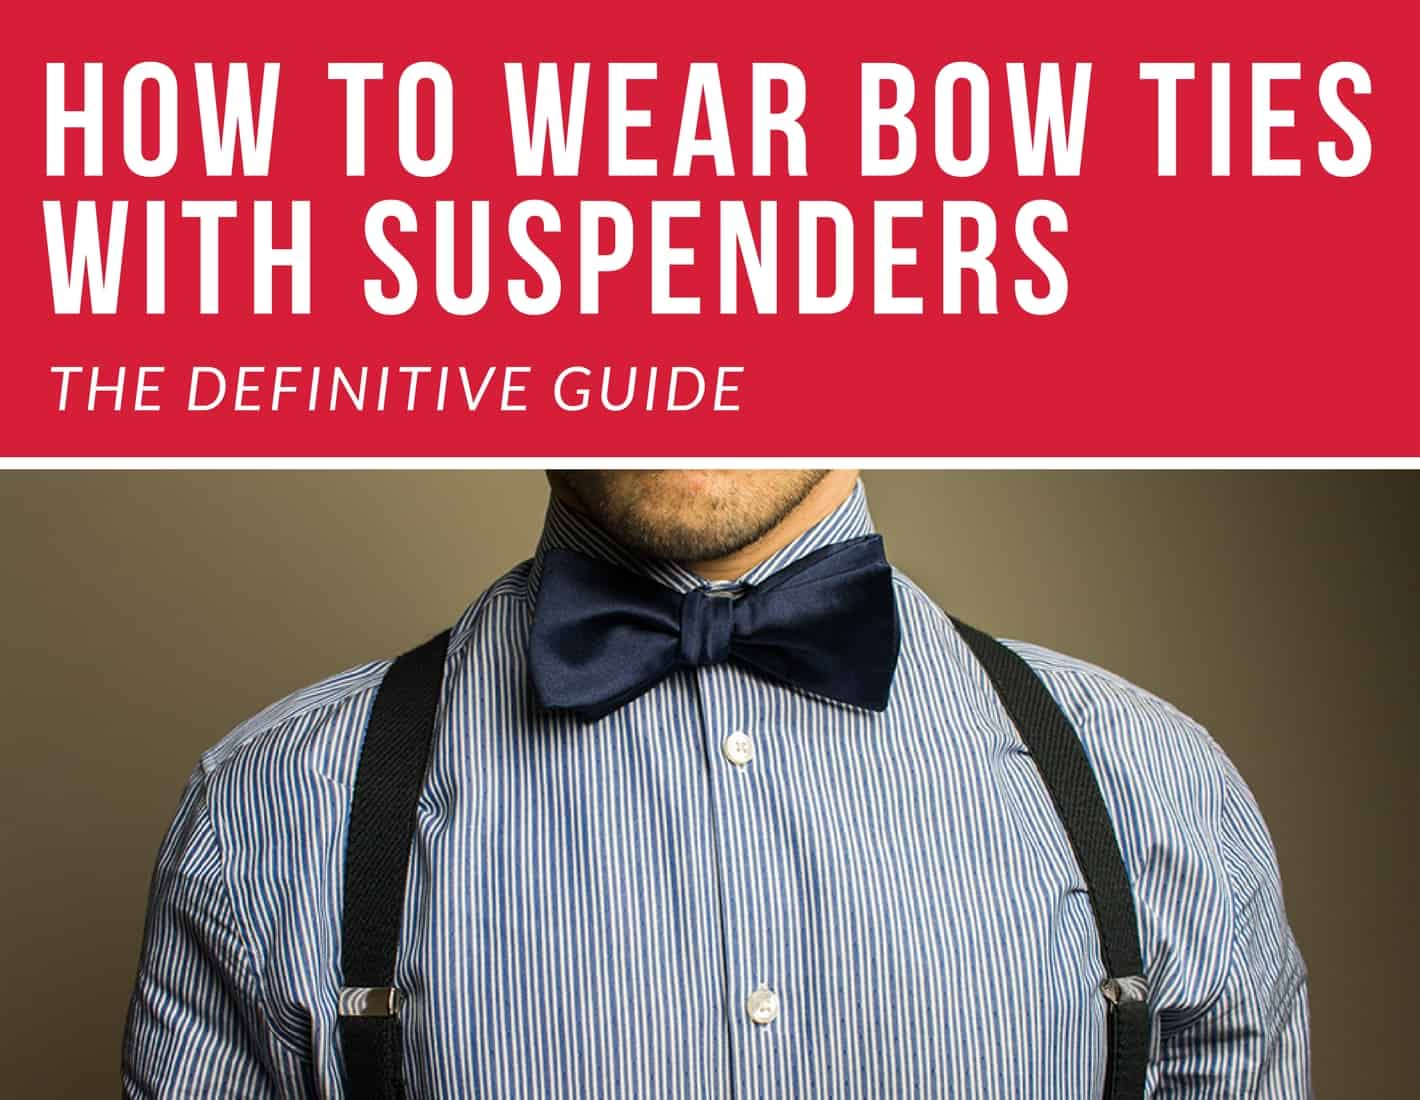 447dfc75510c How To Wear – Bow Ties and Suspenders - The Bow Tie Guy